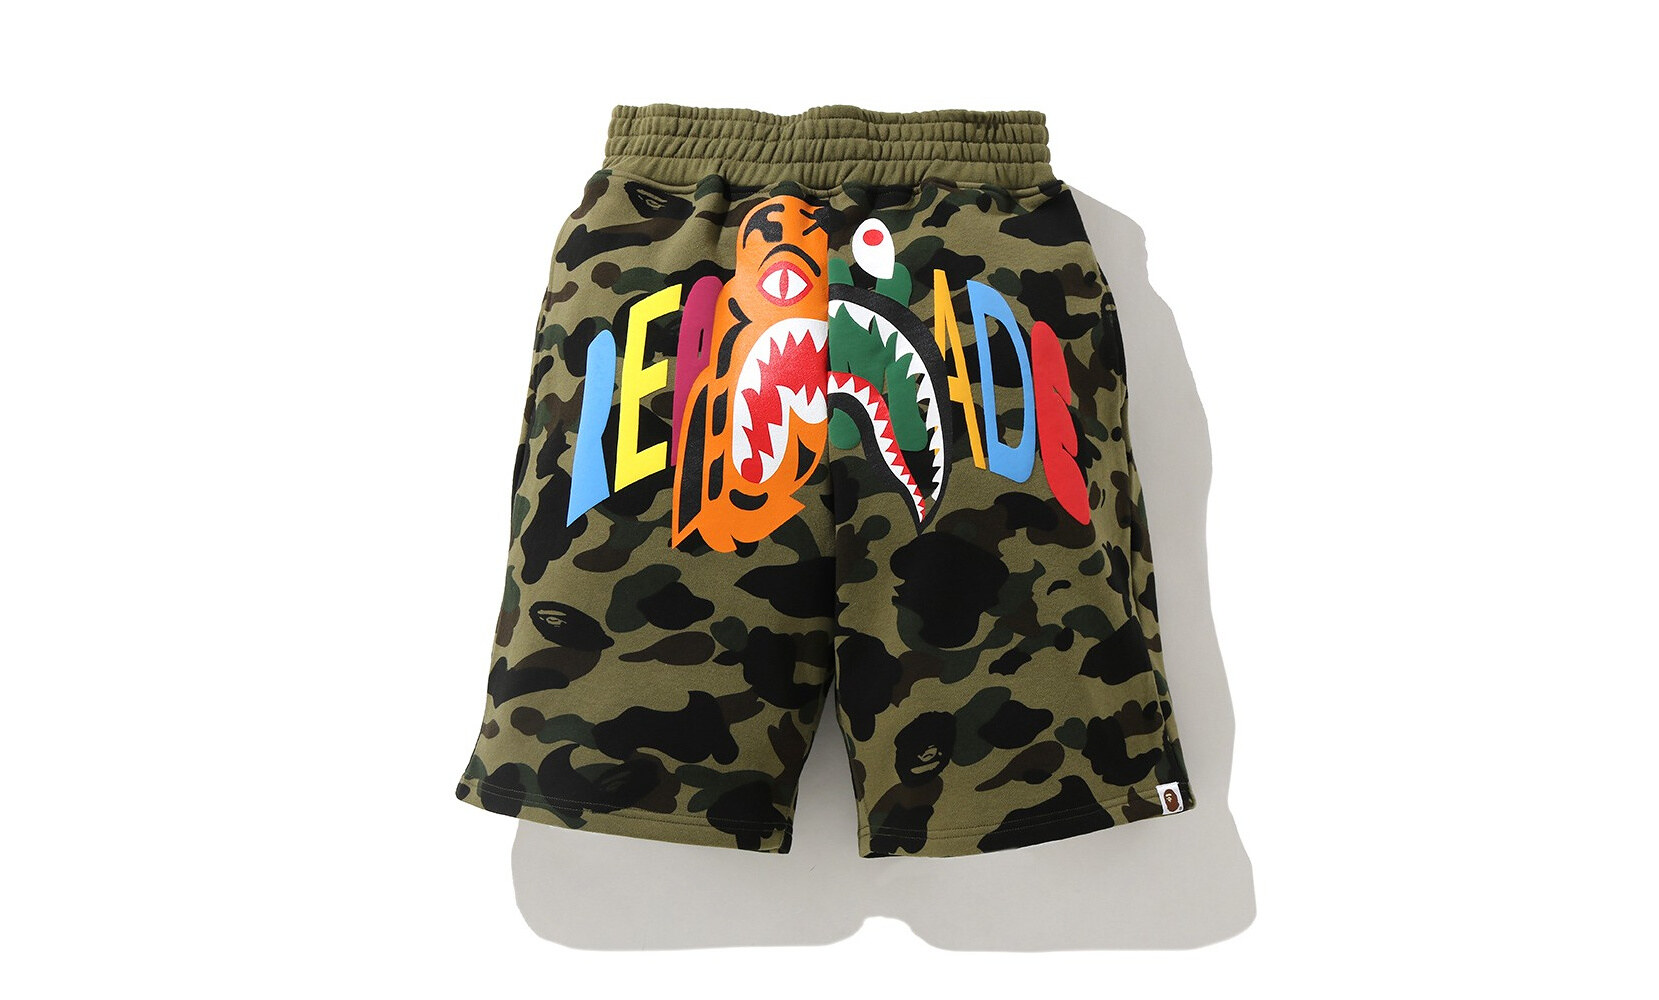 READYMADE x BAPE capsule Collection